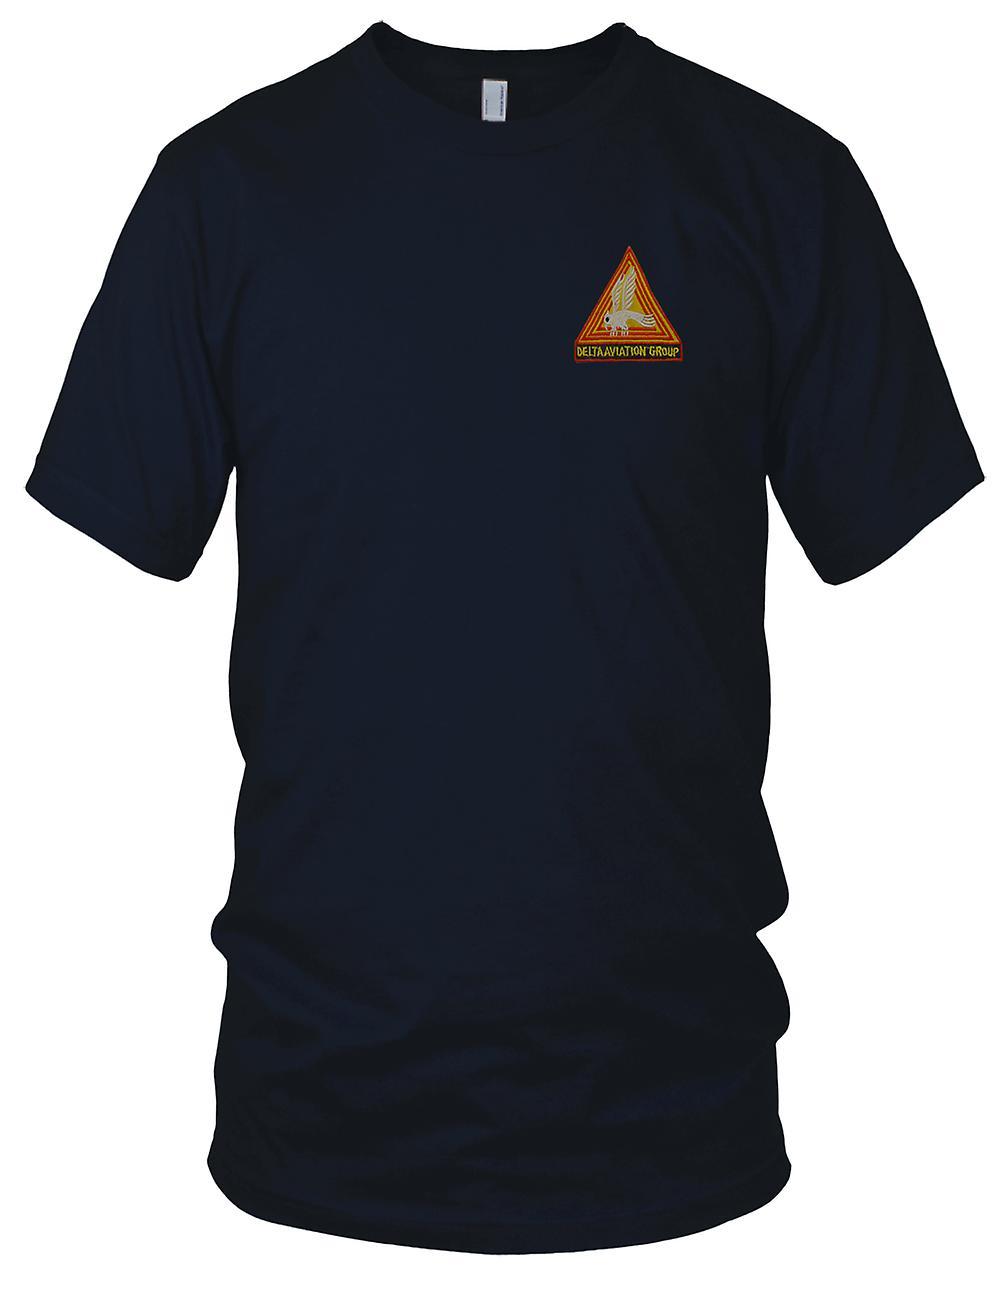 US Army 164th Combat Aviation Group - Delta Aviation Group - Vietnam War Embroidered Patch - Mens T Shirt